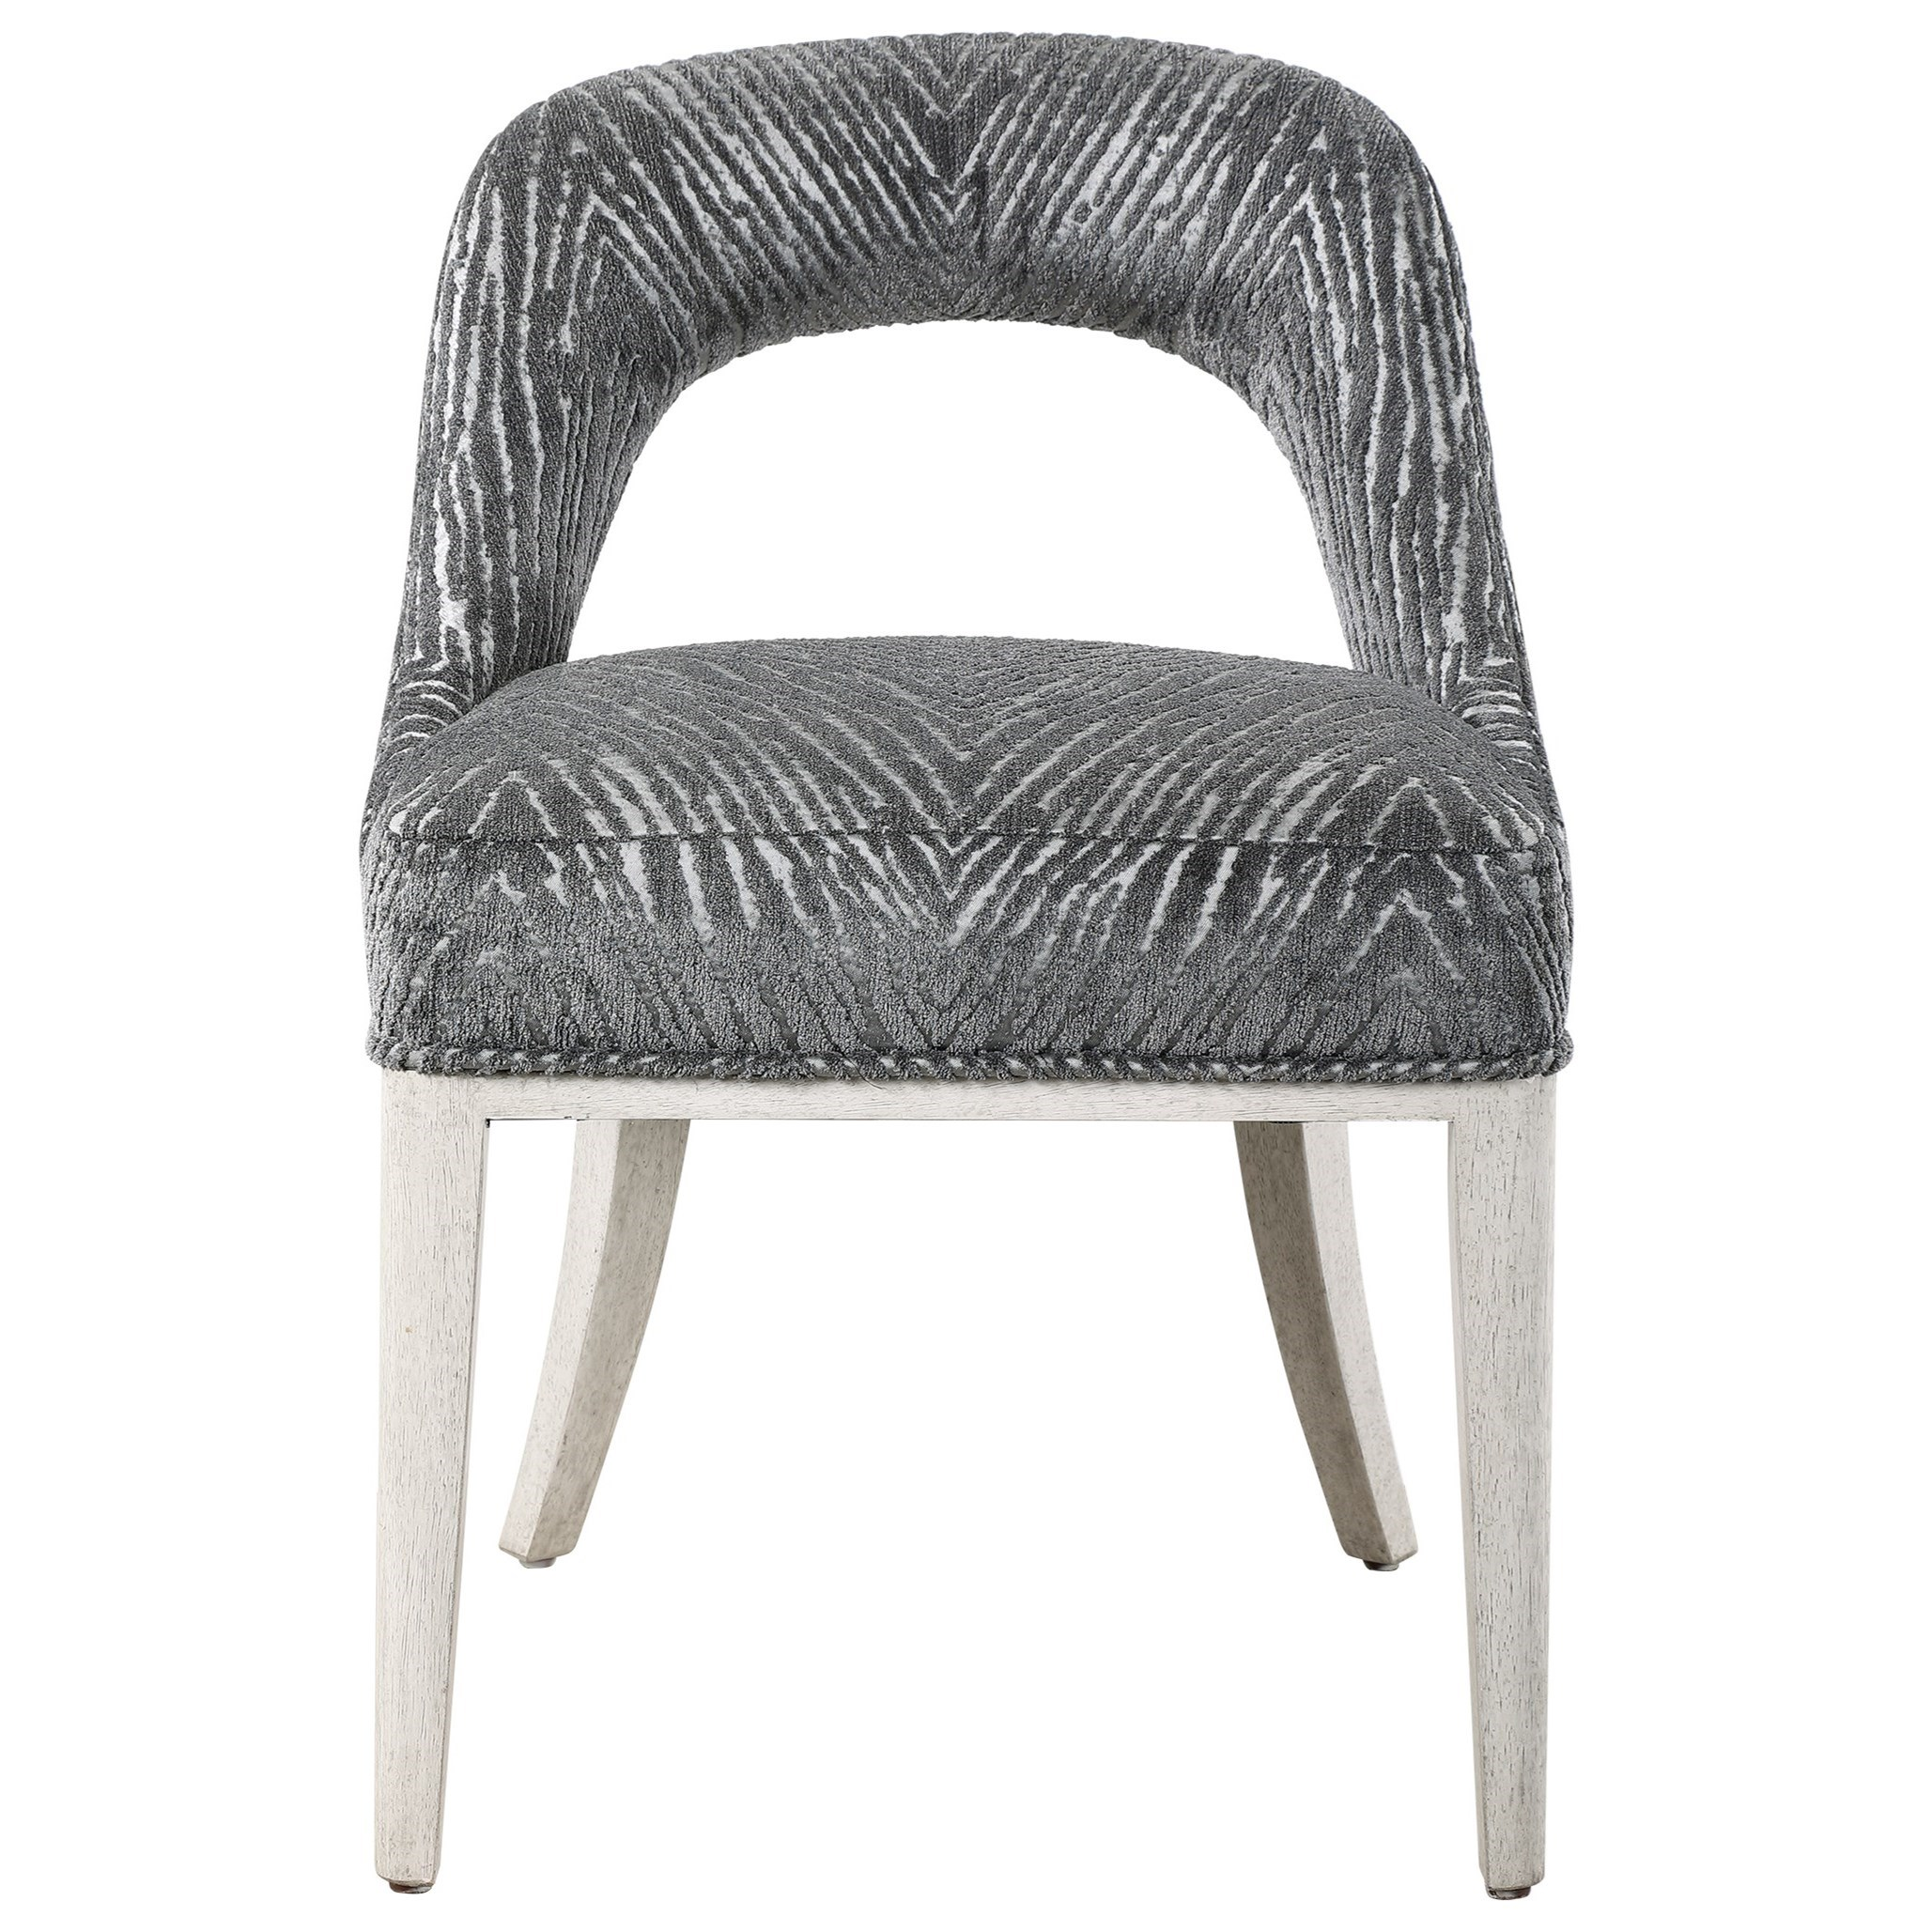 Amalia Accent Chair, S/2